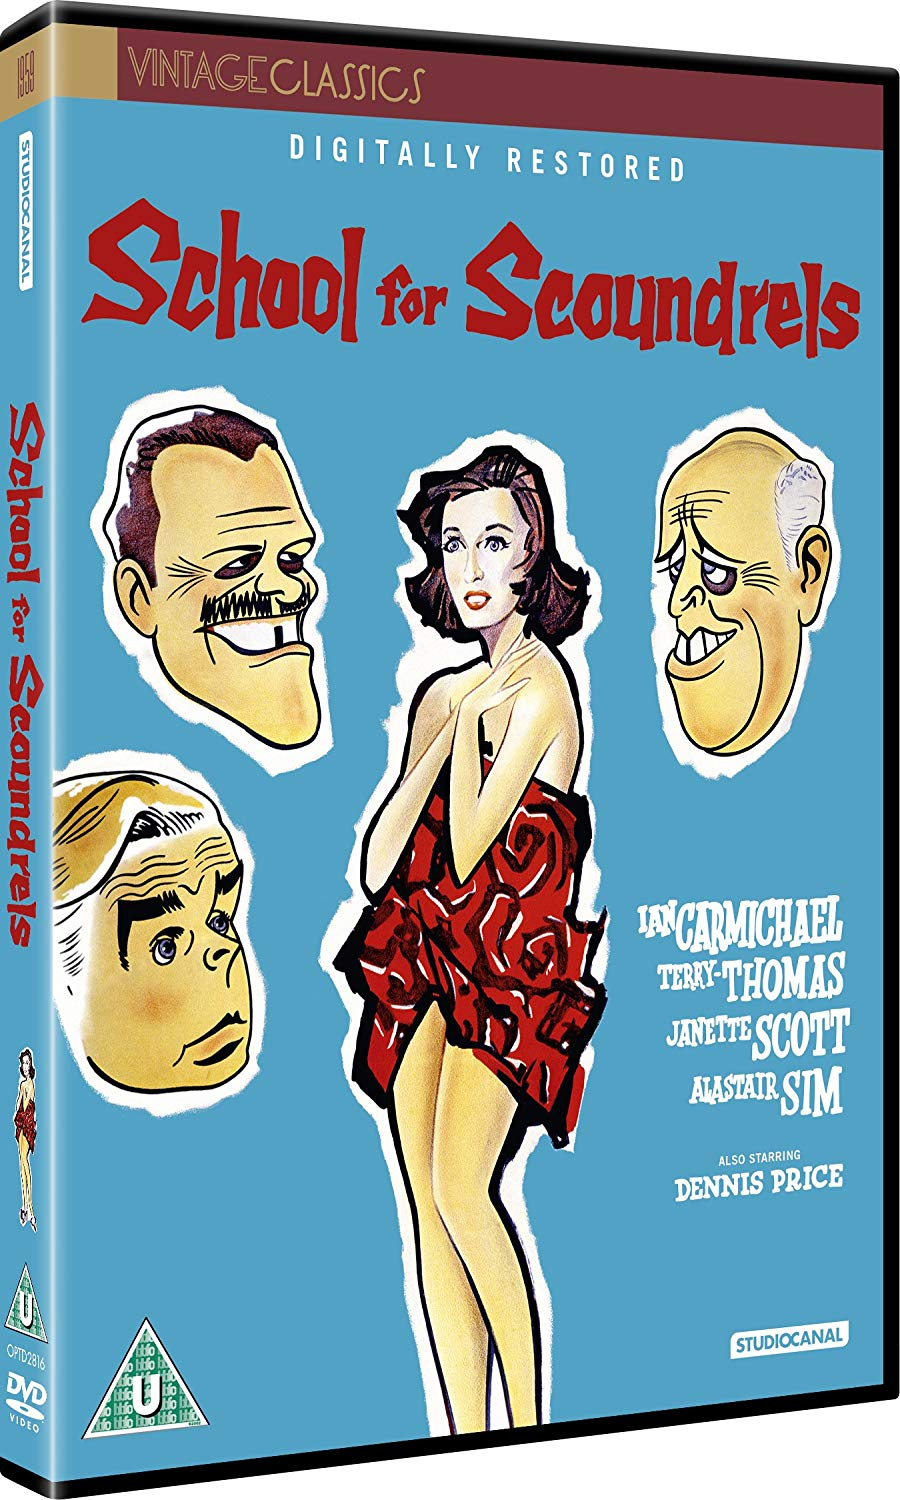 Buy School for Scoundrels